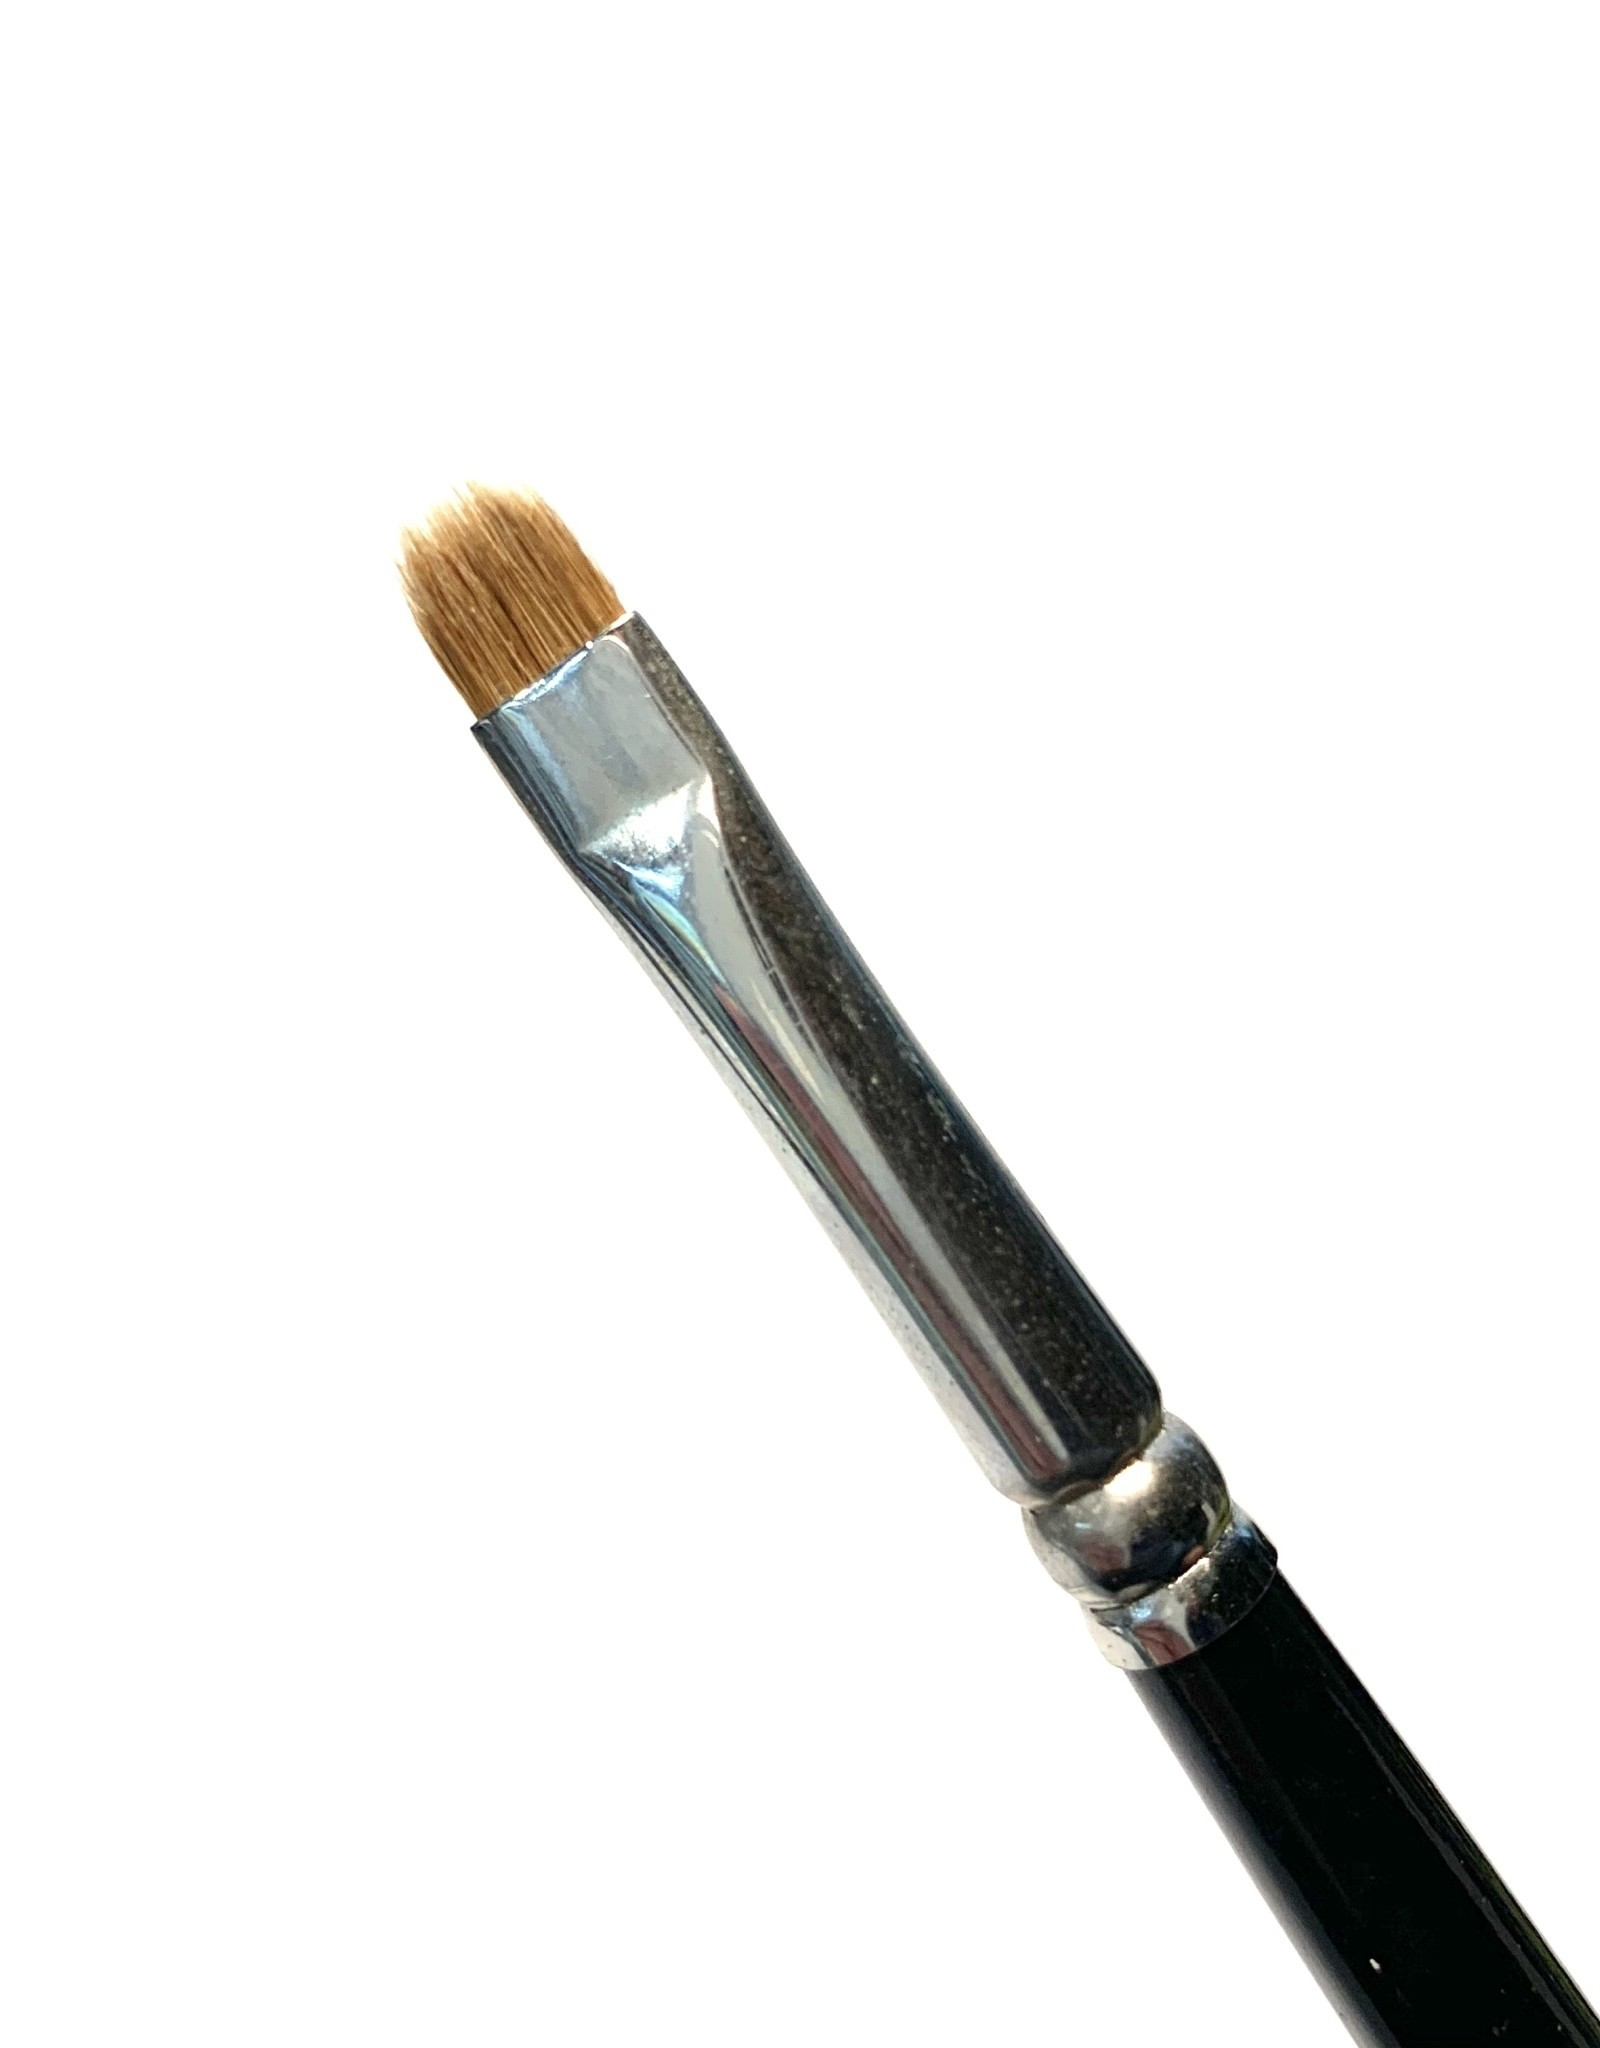 Paragon Pia Supreme Sable Brush, Filbert, 9915 #6